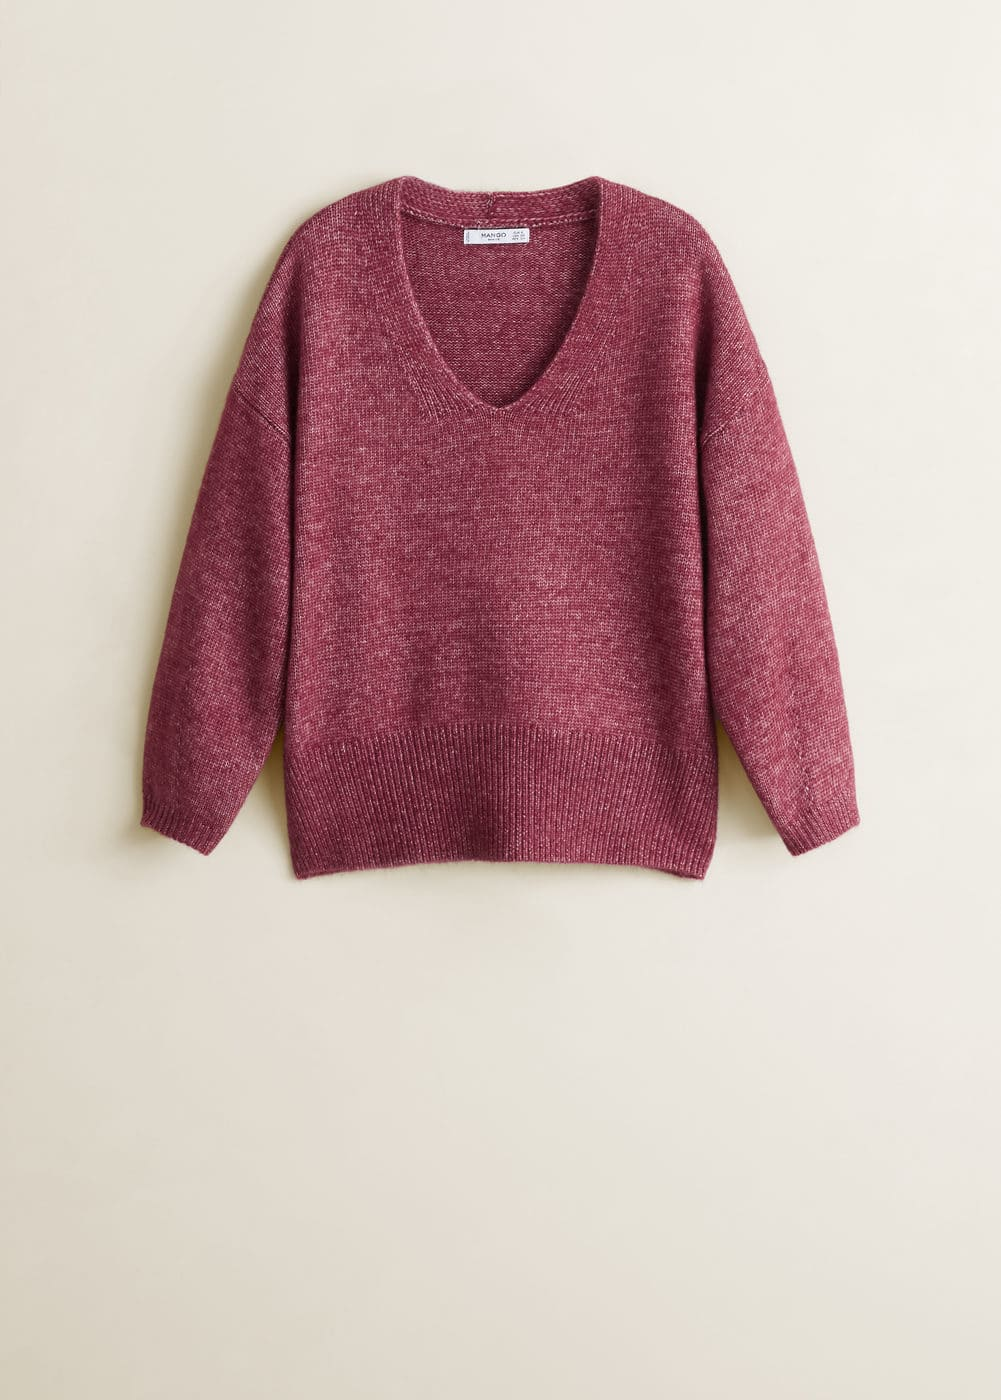 Mango - Recycled polyester sweater - 5